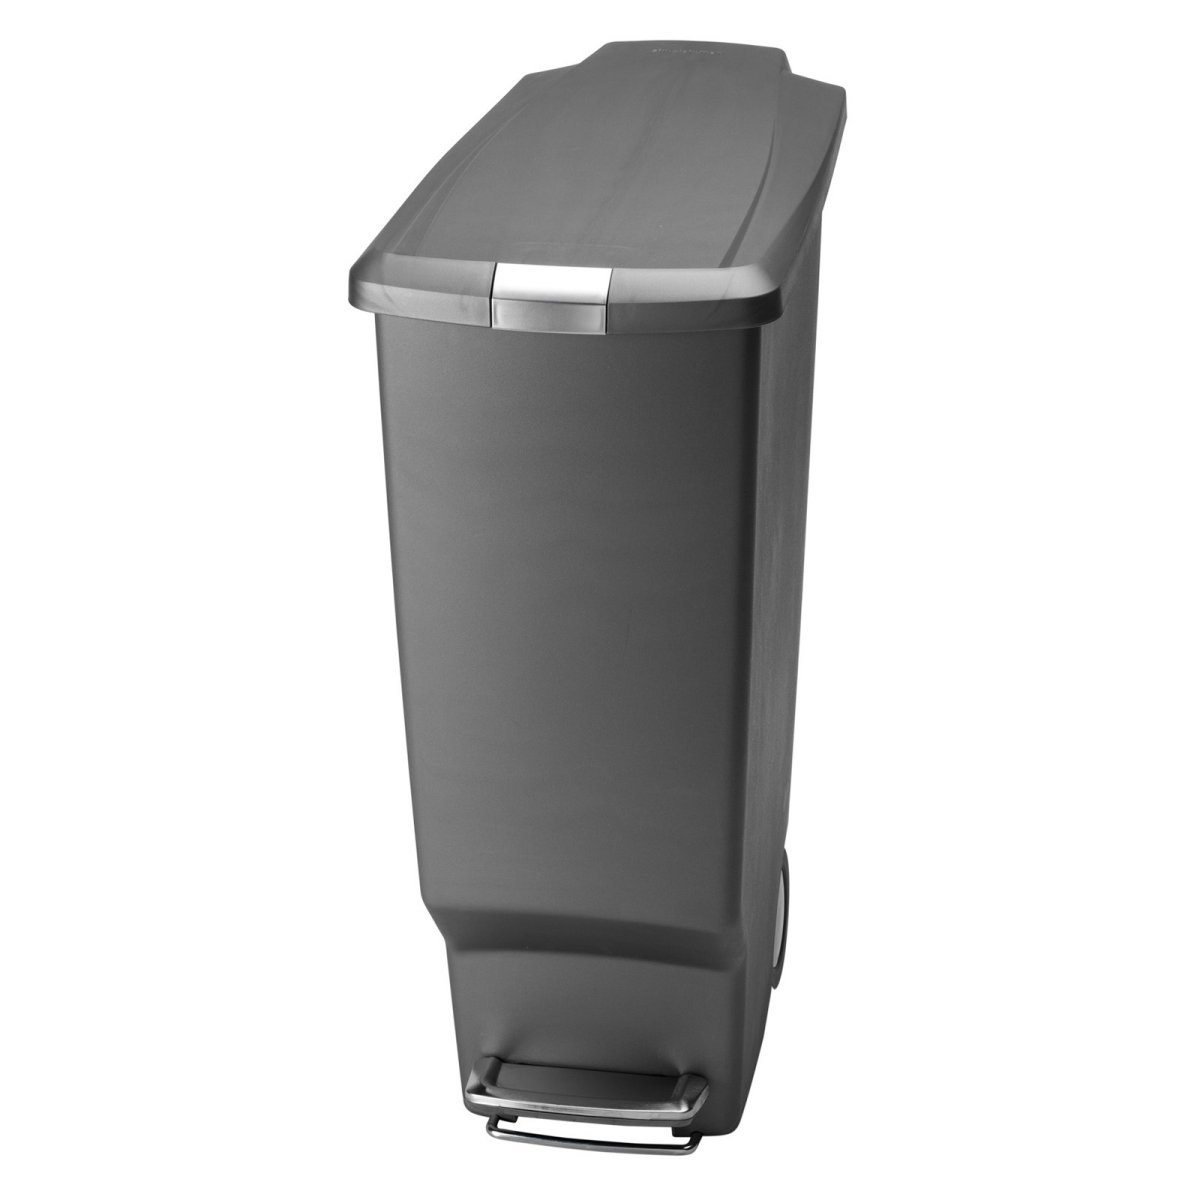 Pictures Of Garbage Cans Clipart Best